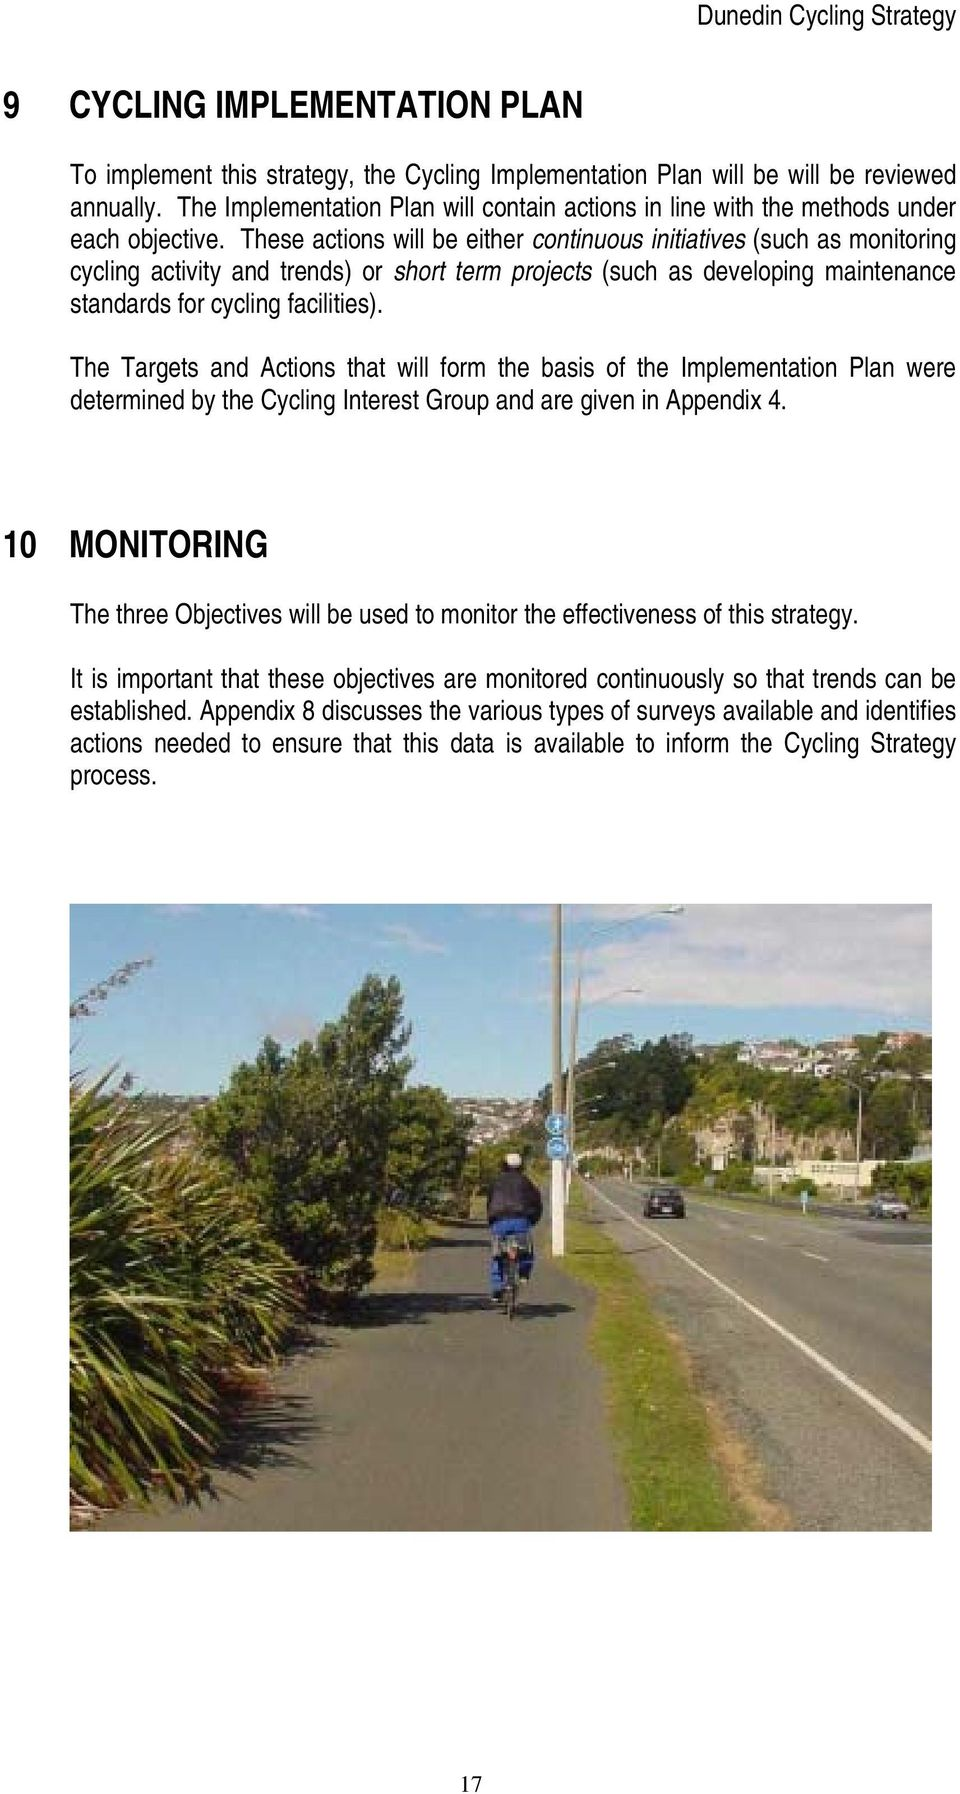 These actions will be either continuous initiatives (such as monitoring cycling activity and trends) or short term projects (such as developing maintenance standards for cycling facilities).